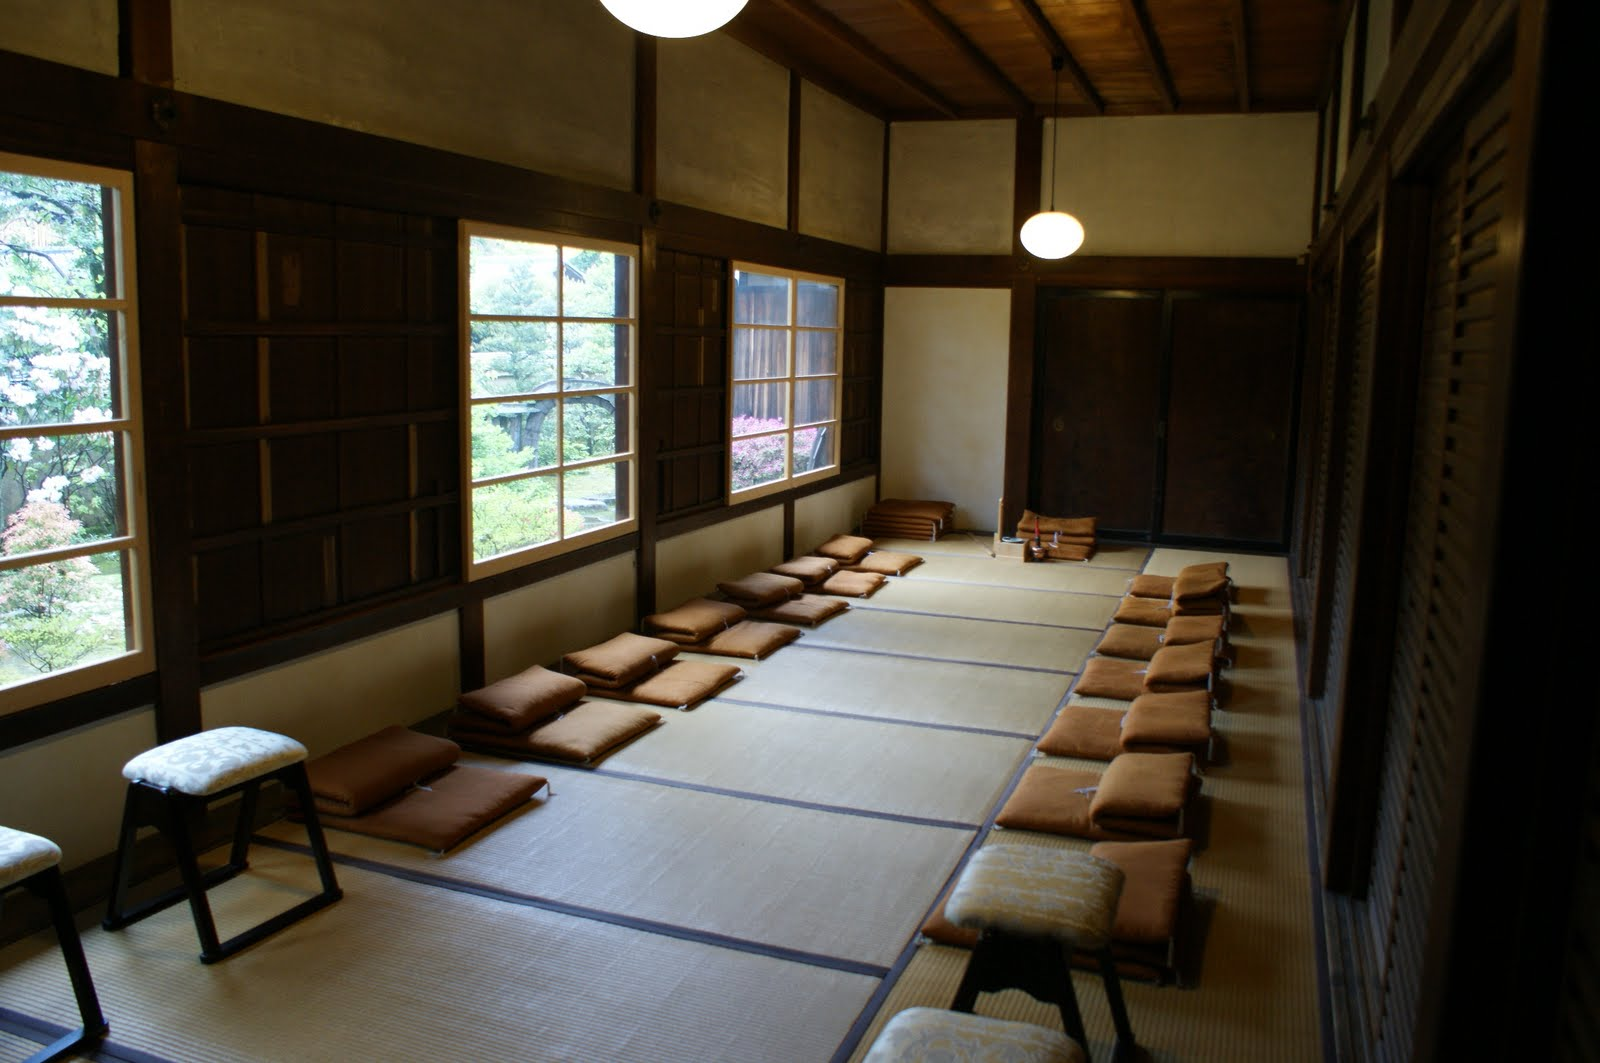 Shunkoin temple today the schedule of april 28th for Zen meditation room